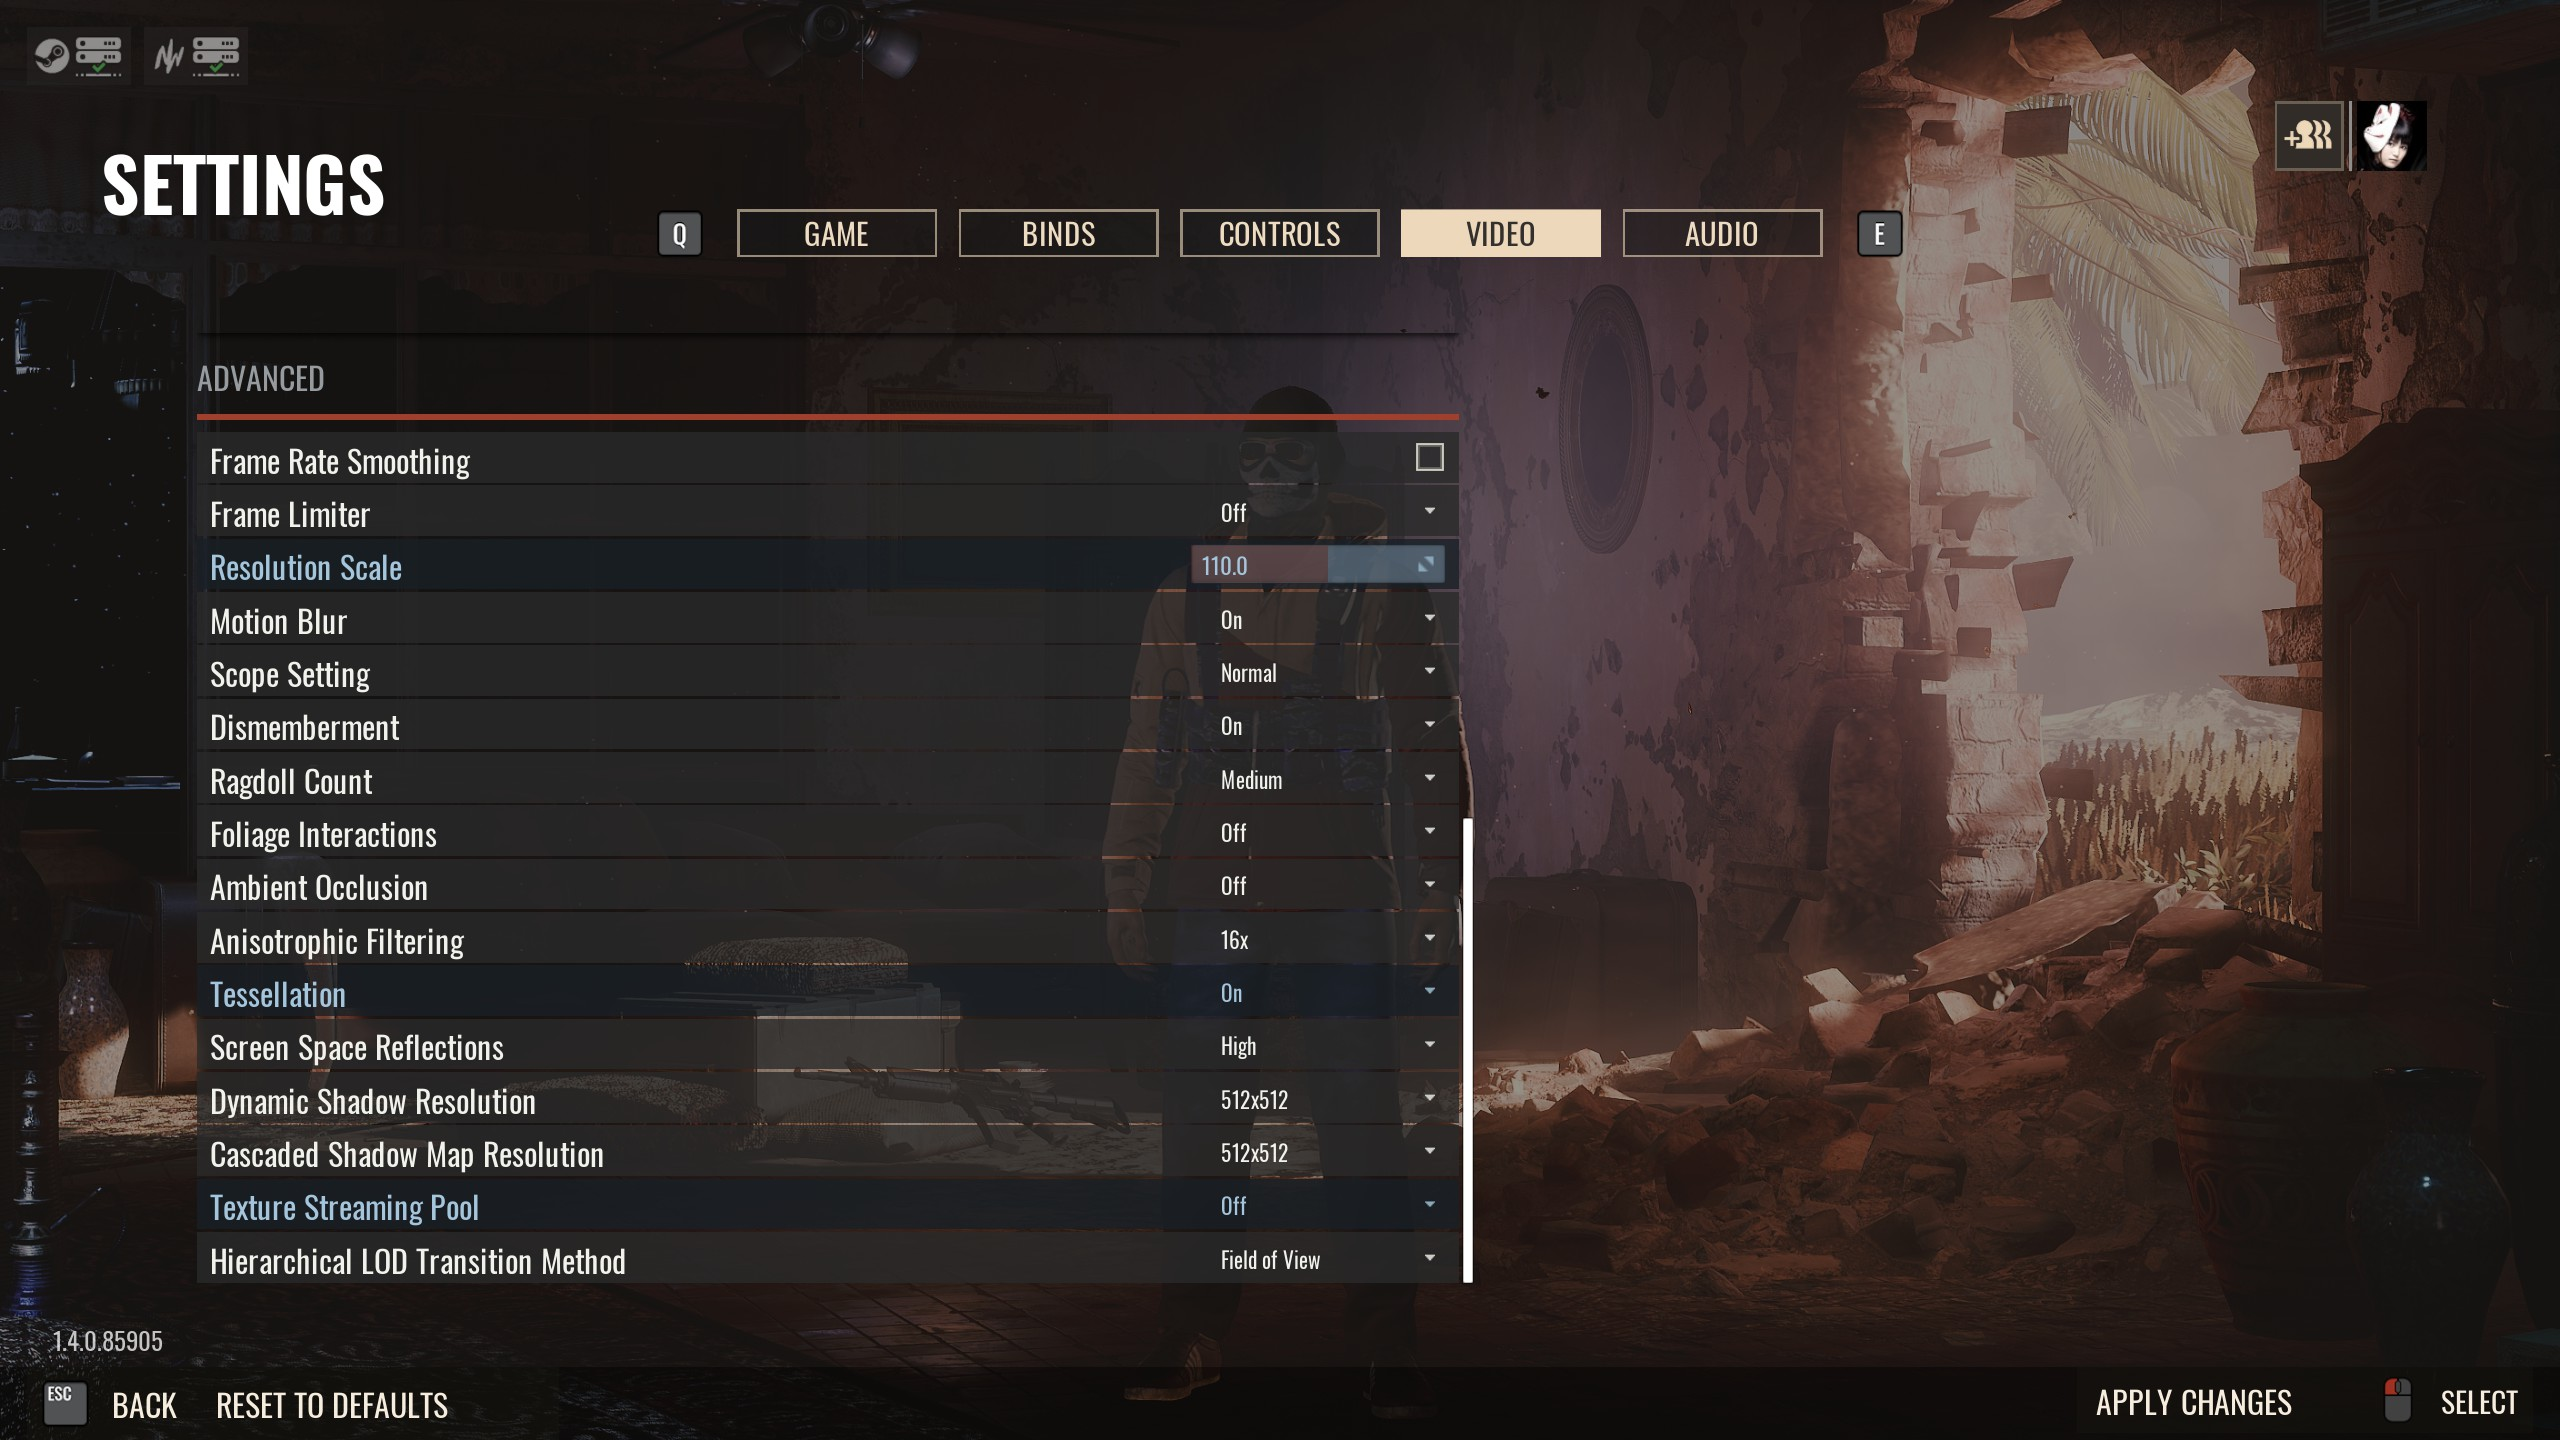 Under  PUT Resolution Scale to 105~120 i use 110. Upping the resolution scale actually utilize your GPU better. This works for other games like BFV, when you up your resolution scale a bit, you actually get higher framerates.